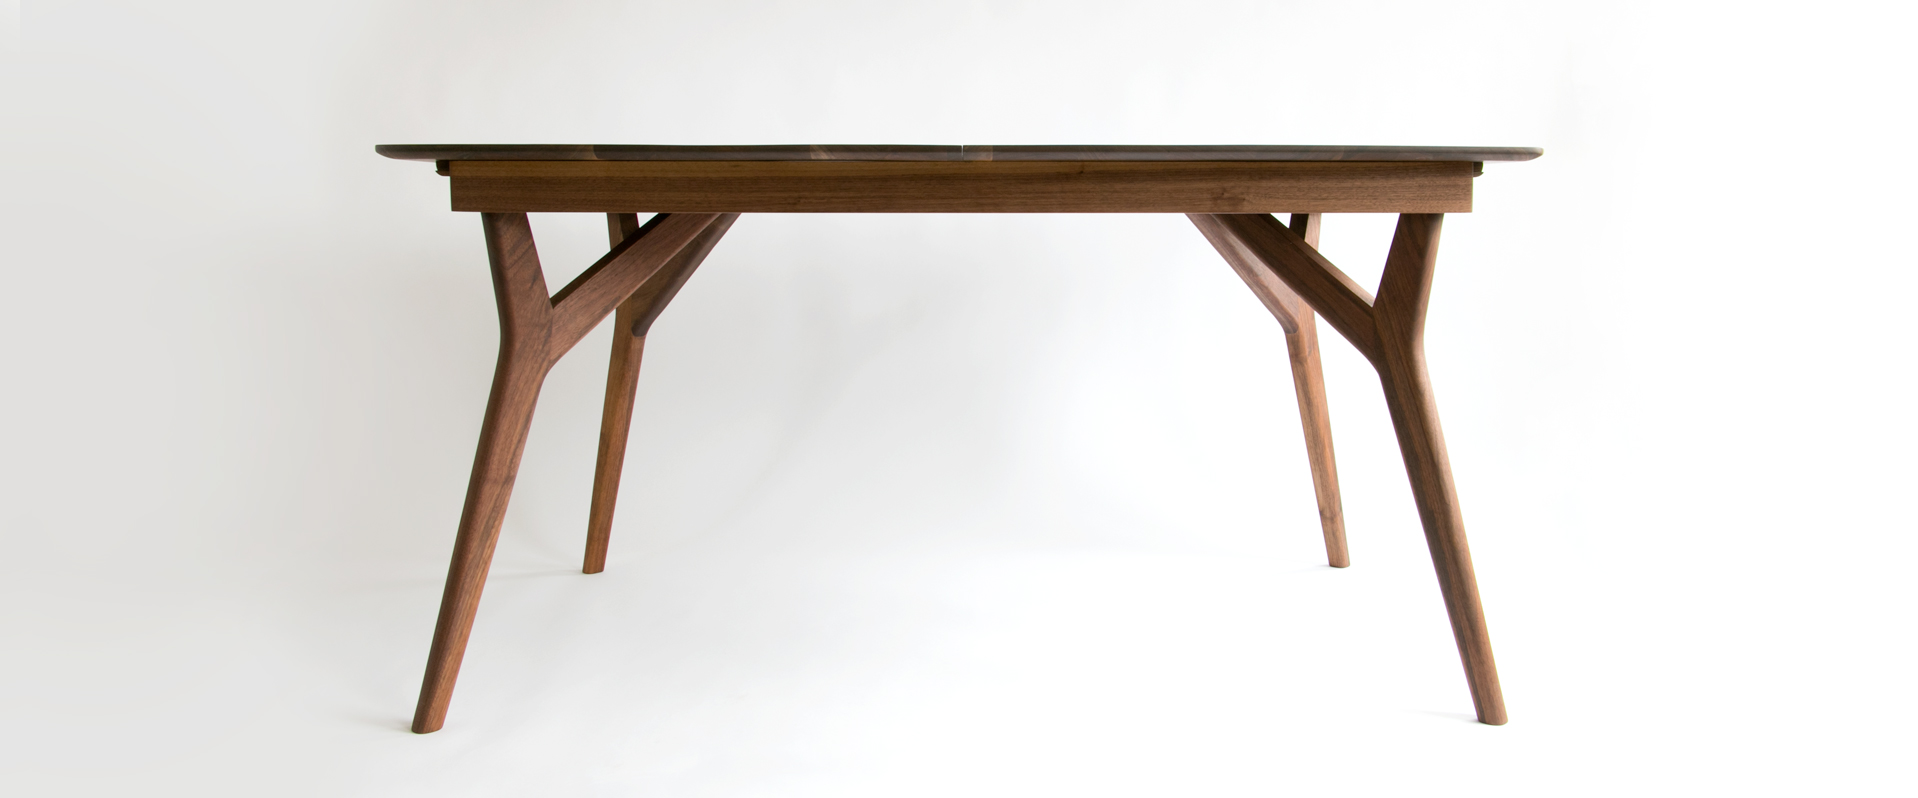 BKGD-Table-1